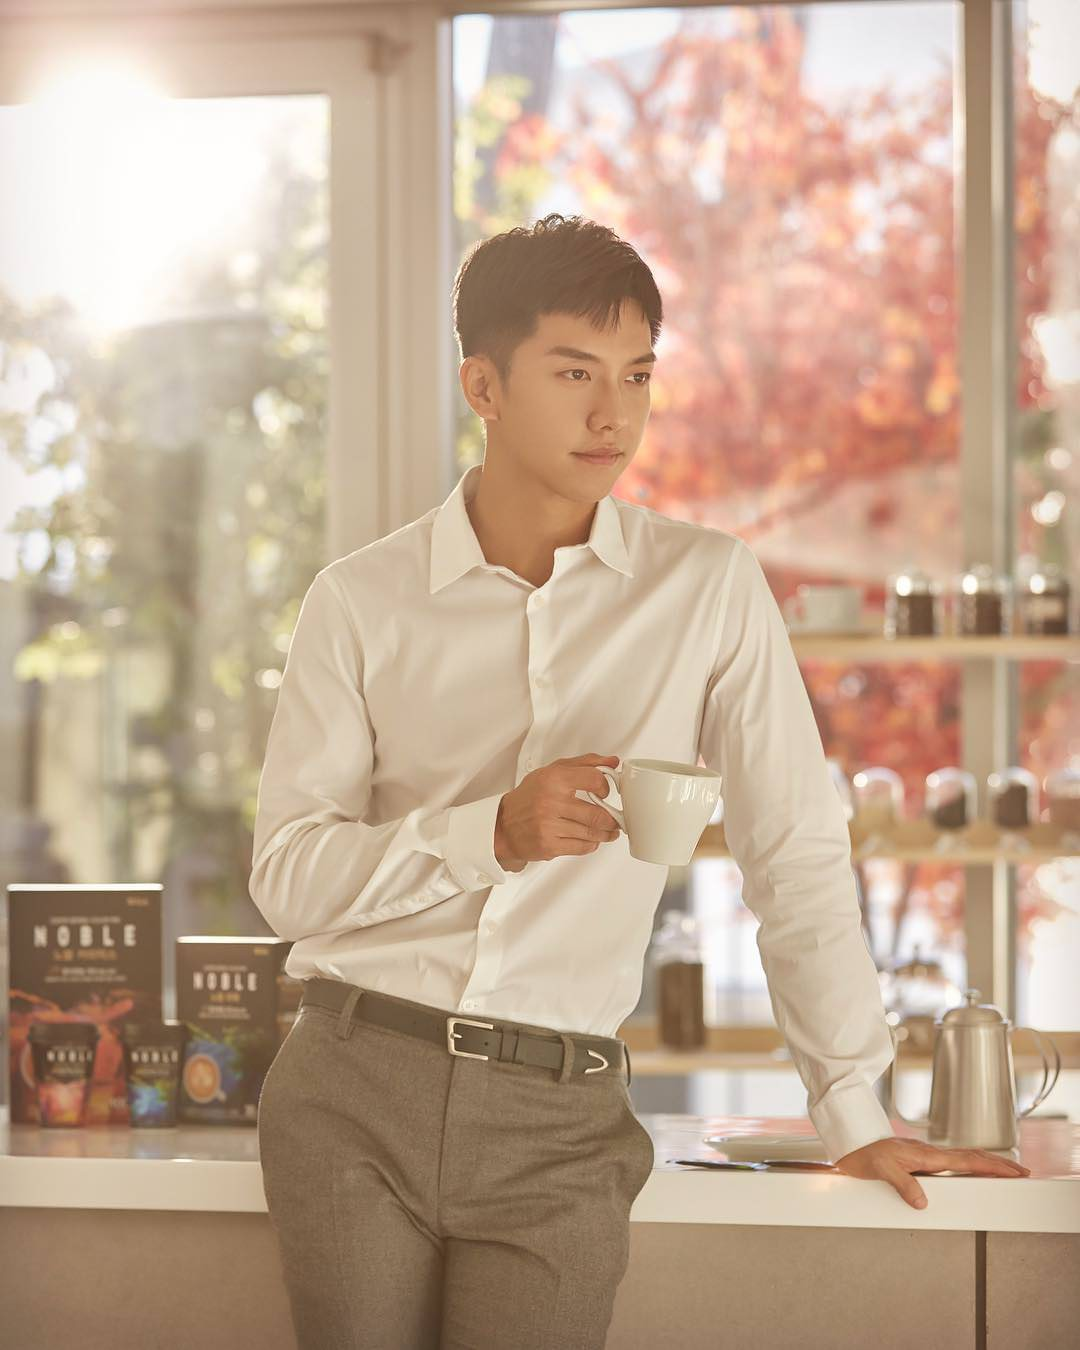 The hotest Kbiz model models: Only one idol reached the top and takes the throne, surpassing both Hyun Bin and Lee Seung Gi - Photo 4.